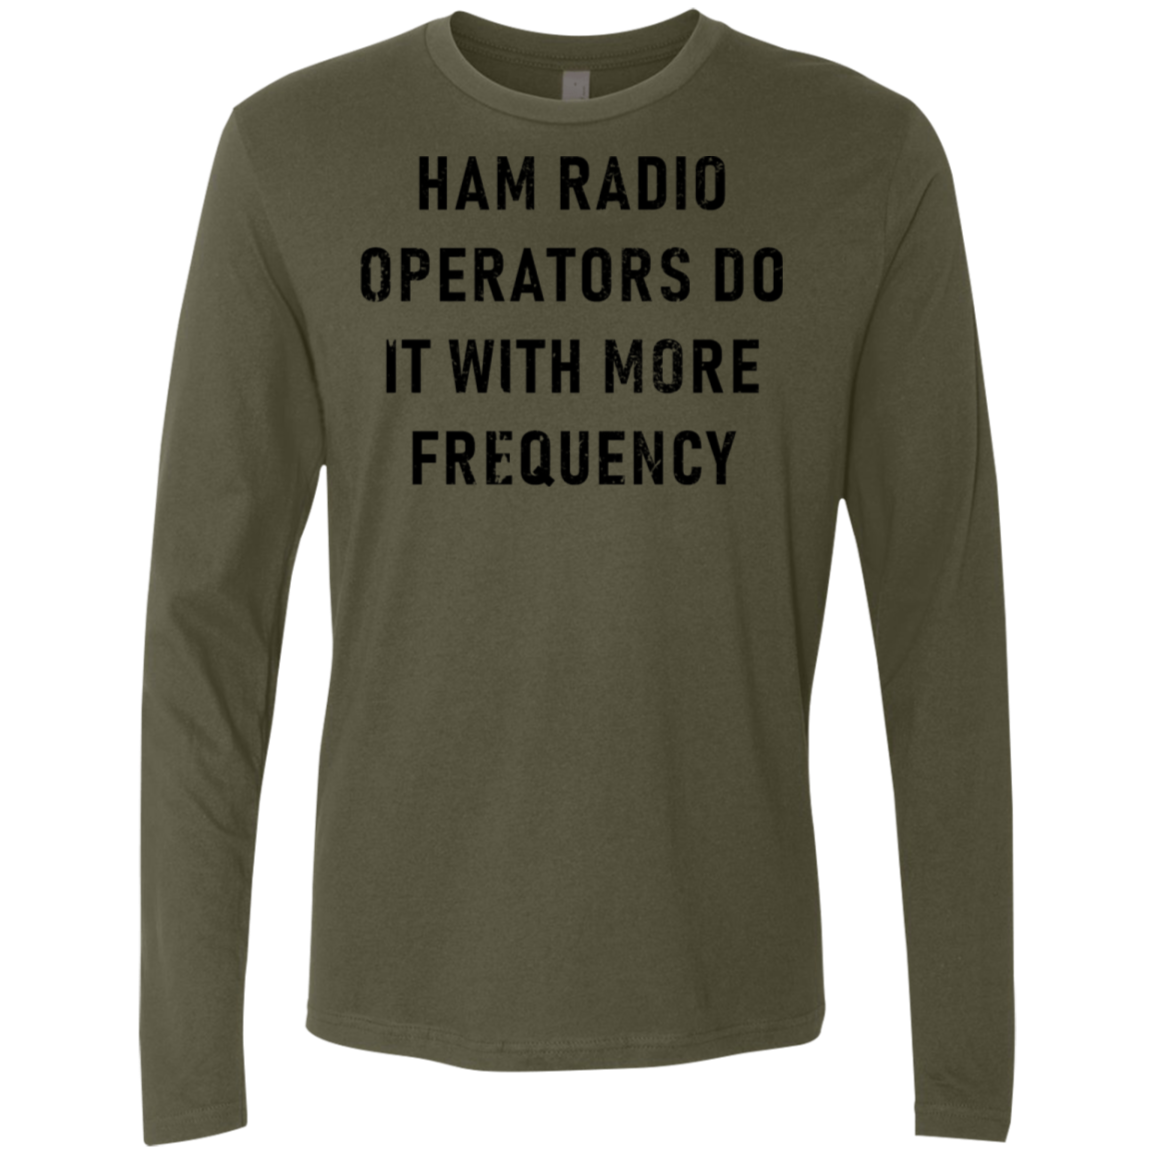 Ham Radio Operators Do It With More Frequency Men's Long Sleeve Tee